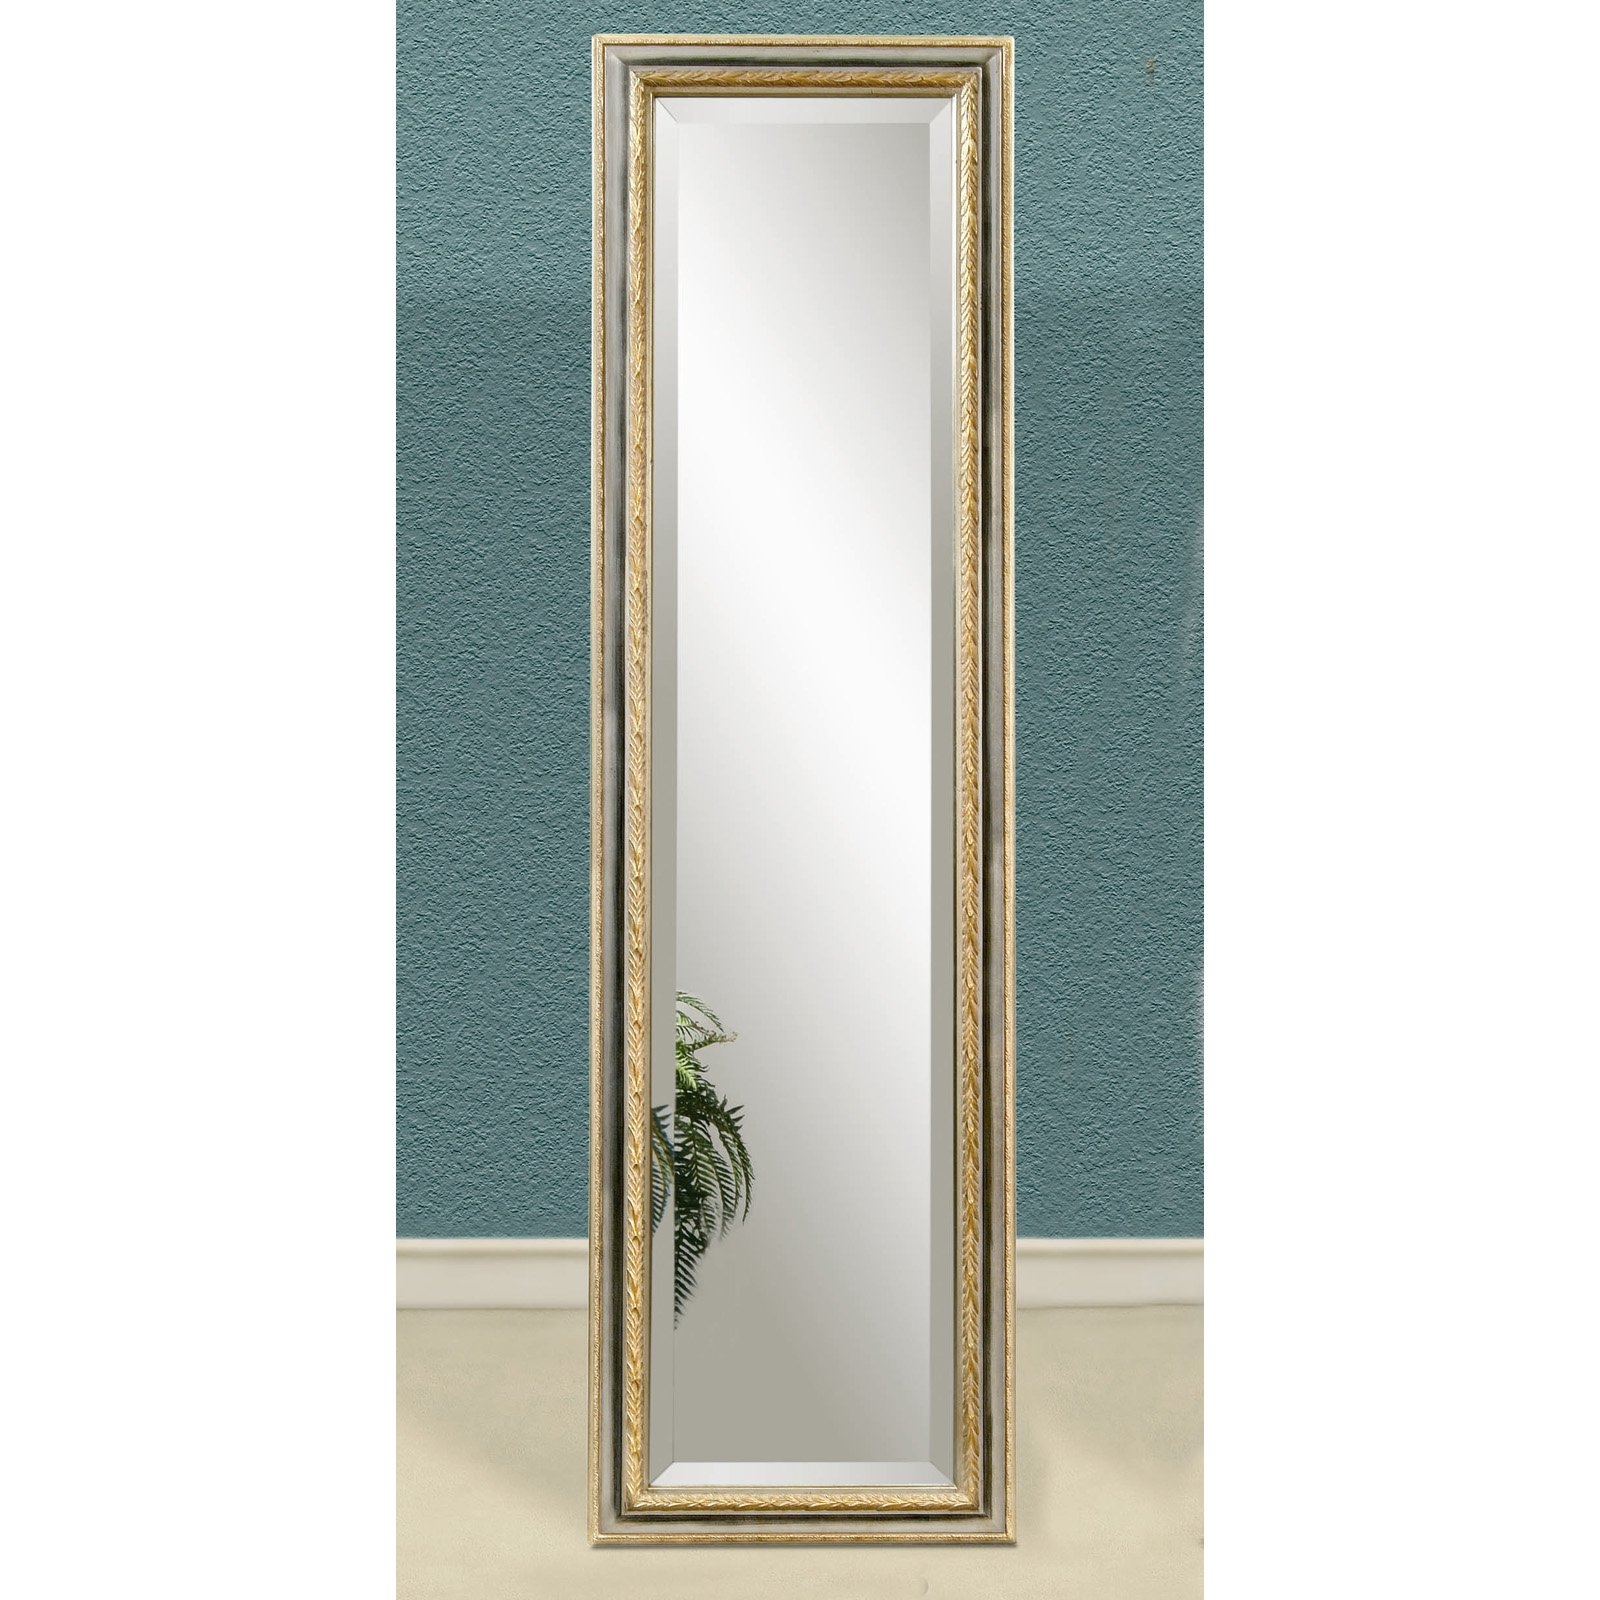 Silver Gold Full Length Cheval Floor Mirror 18w X 64h In For Free Standing Silver Mirror (Image 14 of 15)